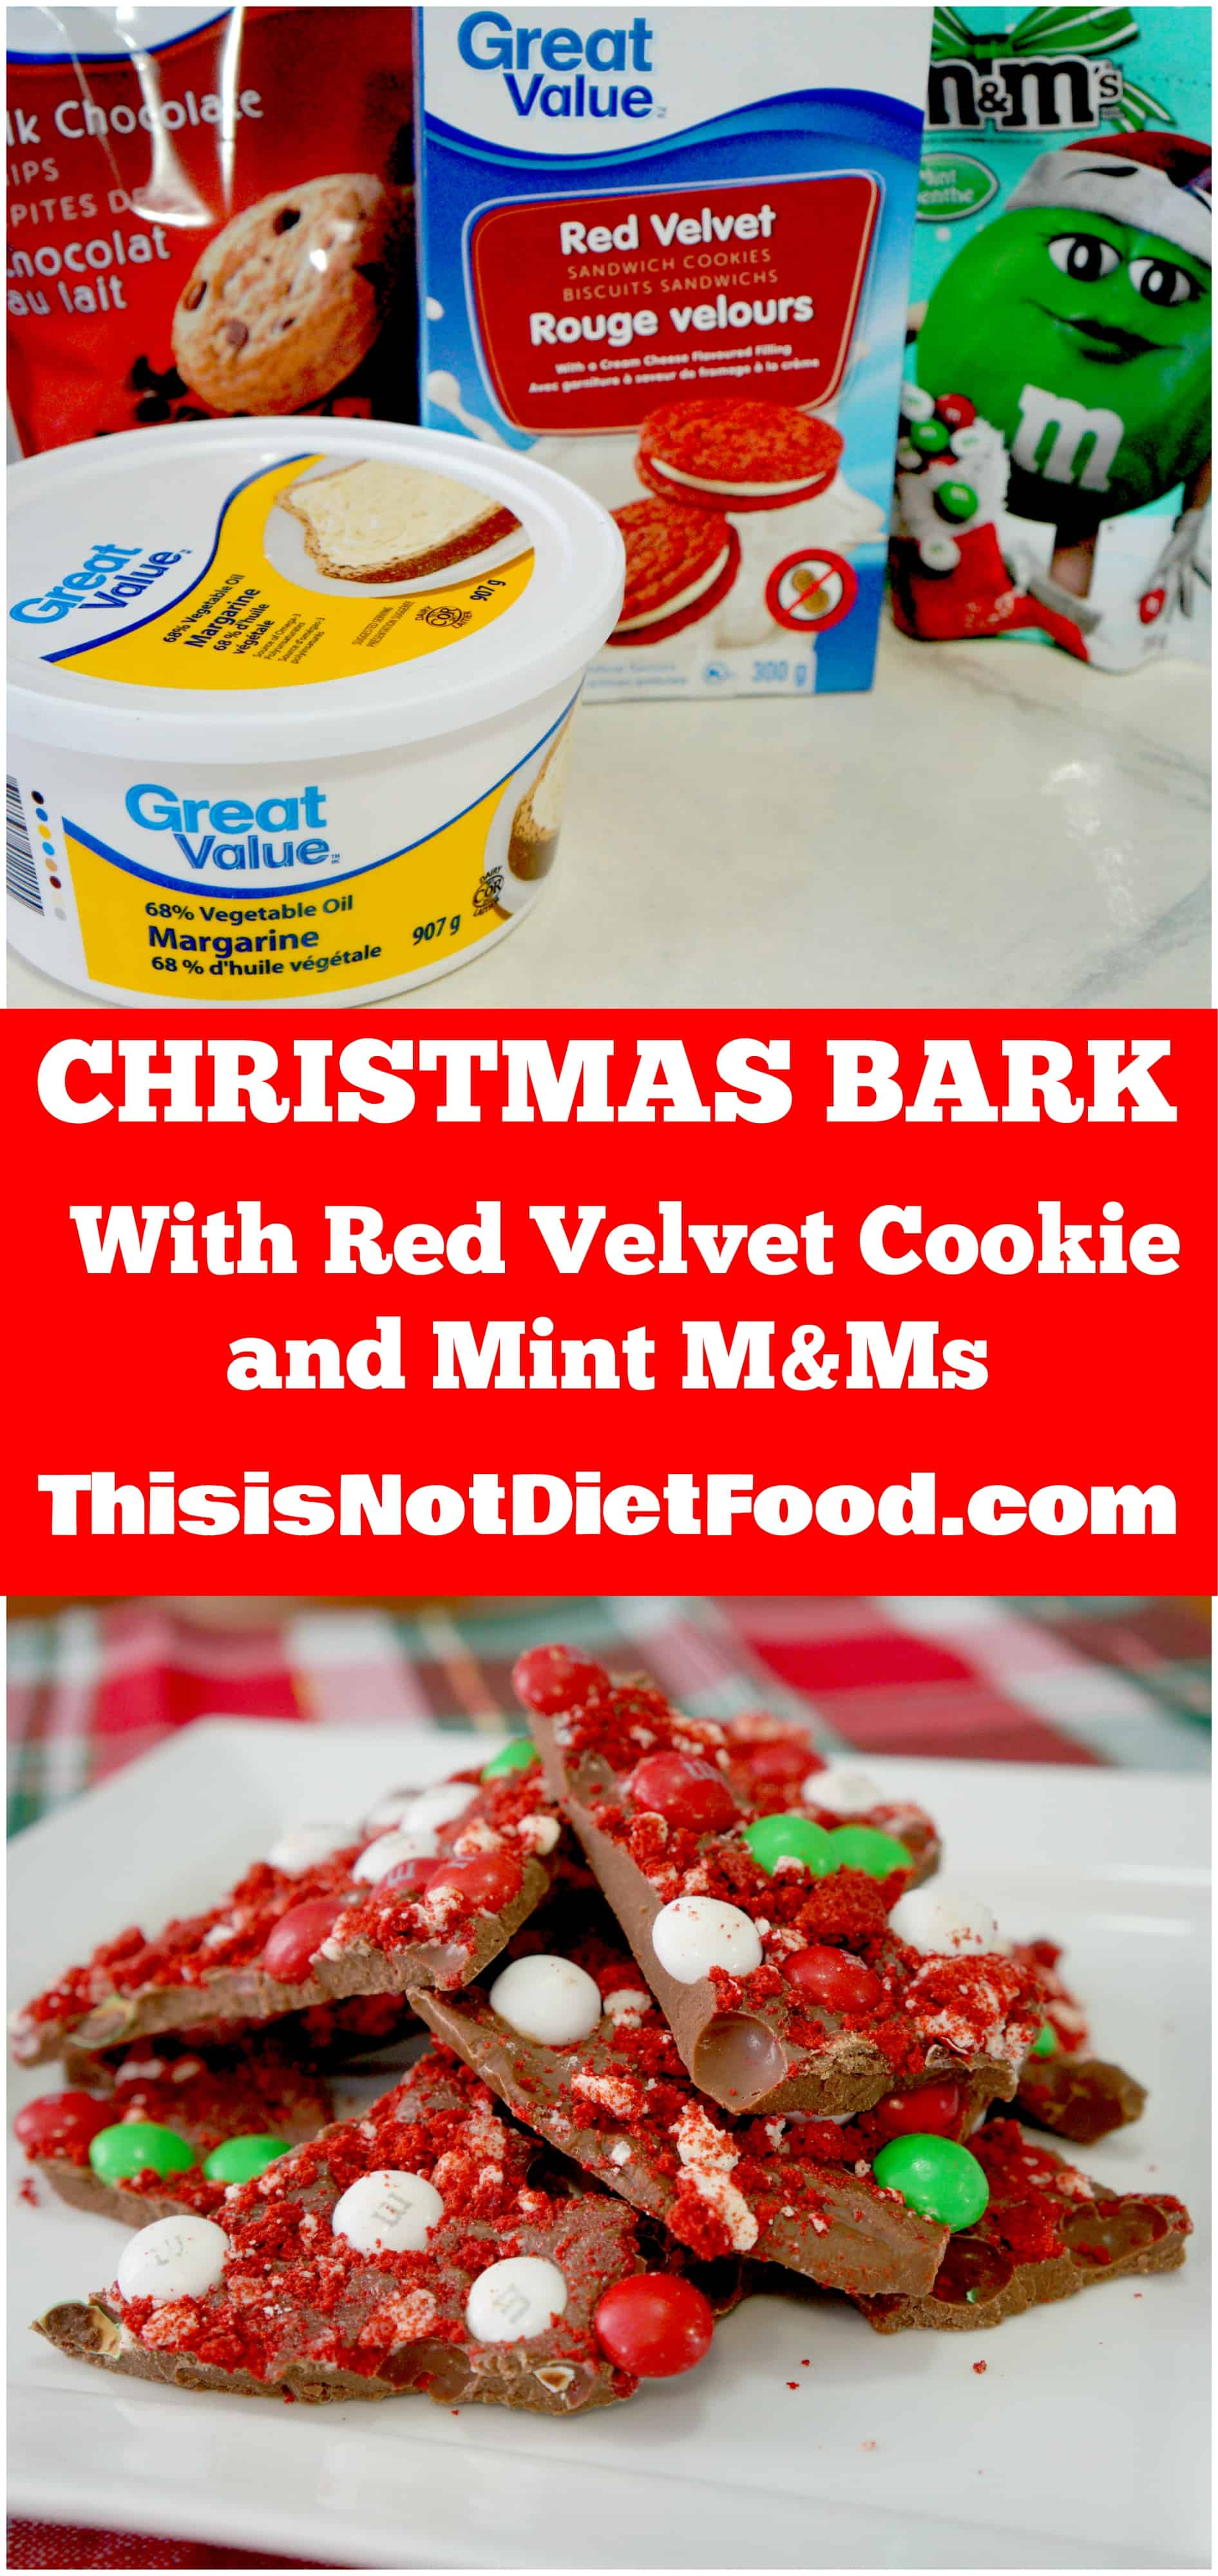 Christmas Bark with Red Velvet Cookie and Mint M&Ms.